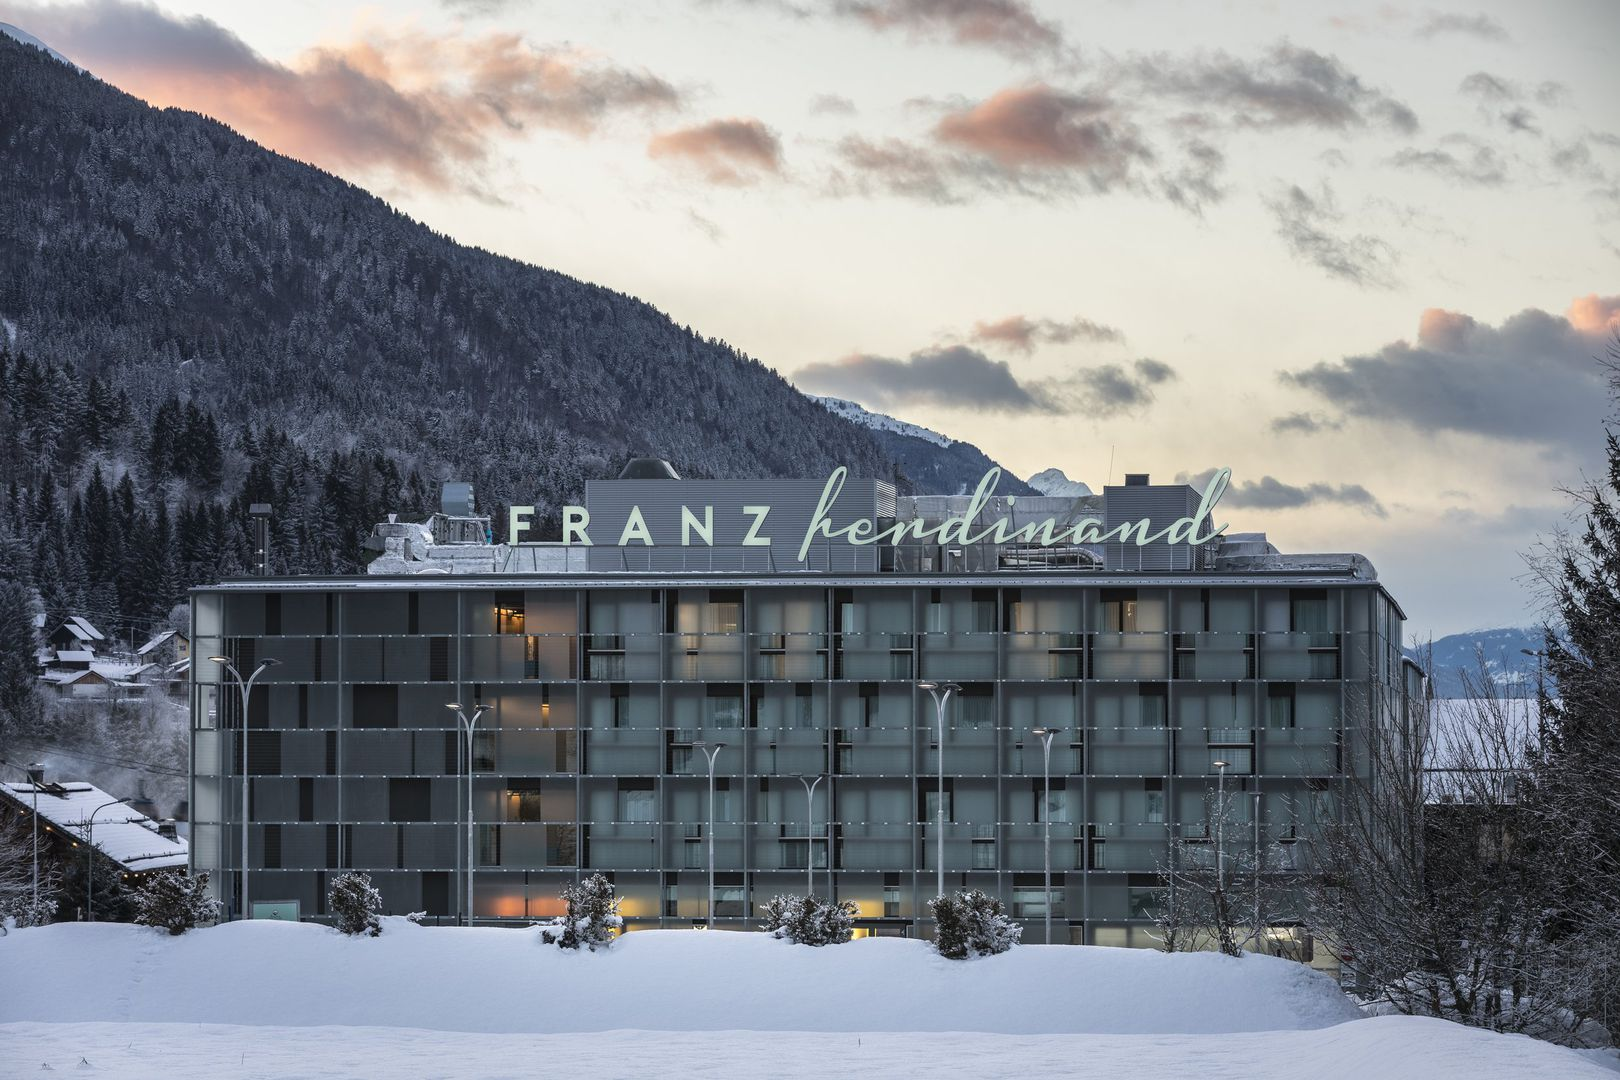 FRANZ ferdinand Mountain Resort Nassfeld - Slide 1